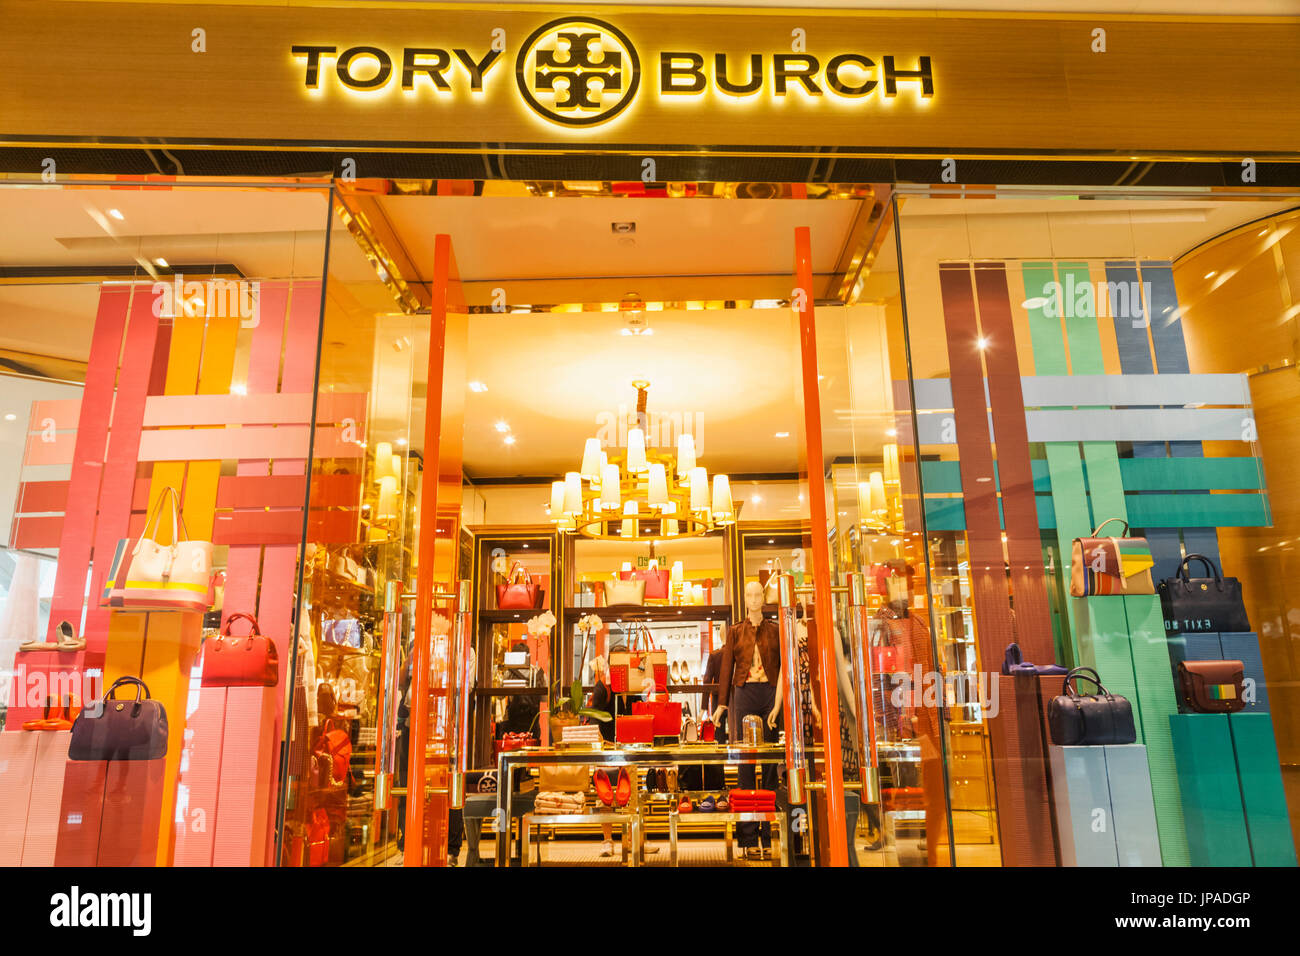 China, Hong Kong, Central, IFC Shopping Mall, Tory Burch Store - Stock